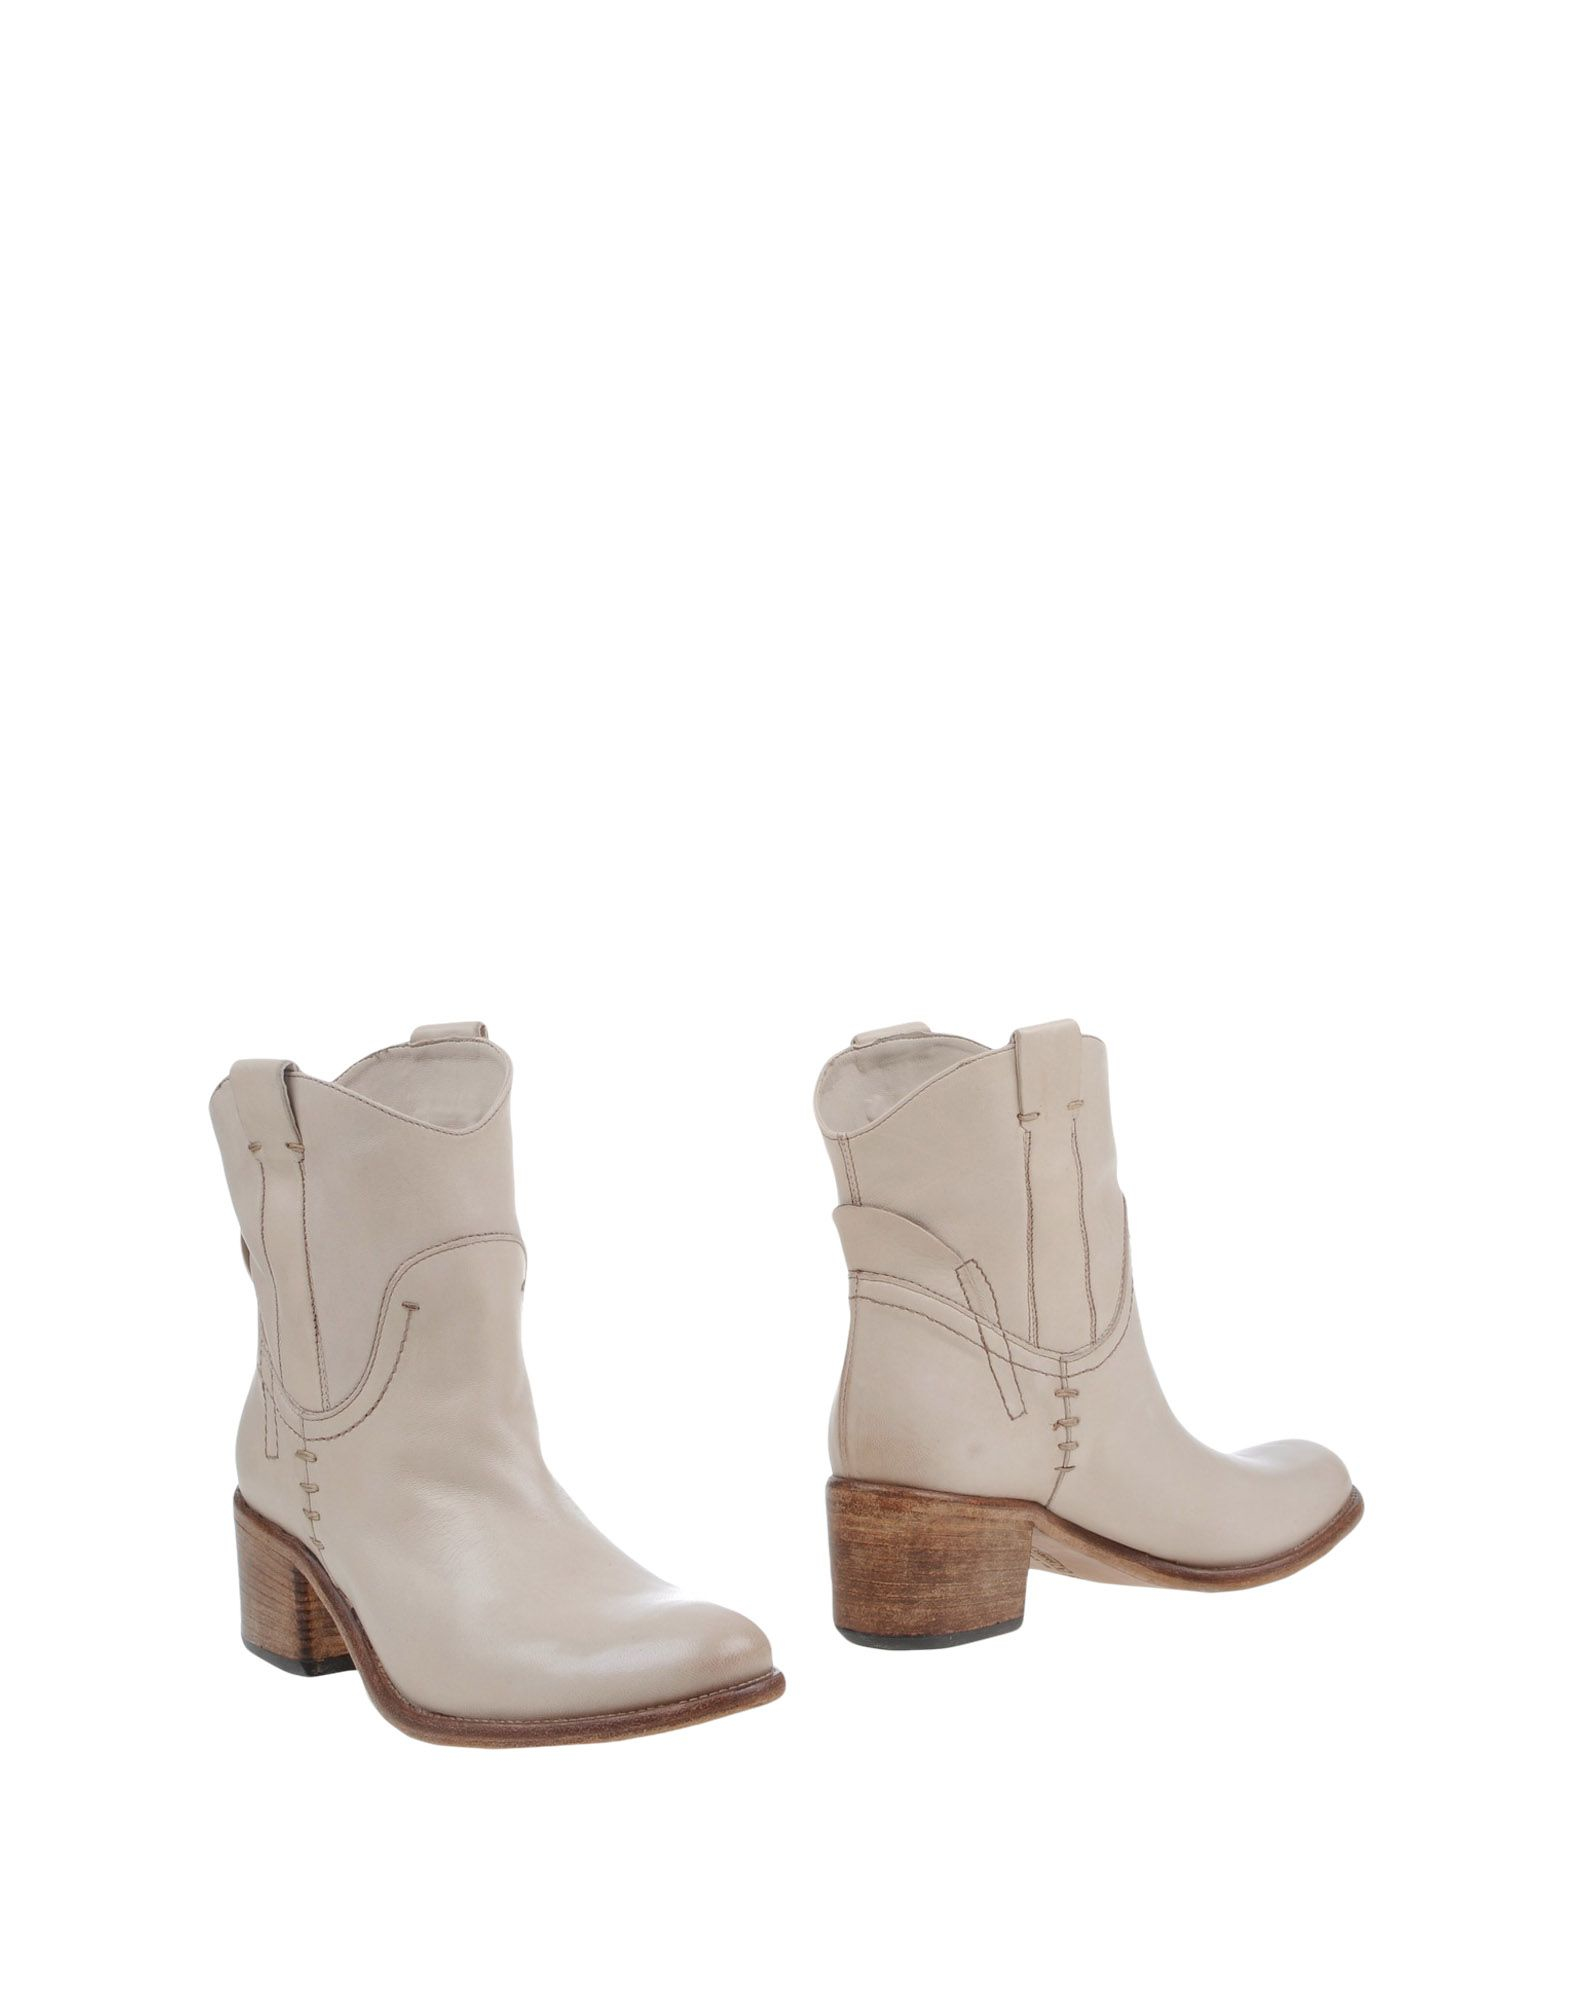 995f93dde9e Lyst - Alberto Fermani Ankle Boots in Natural